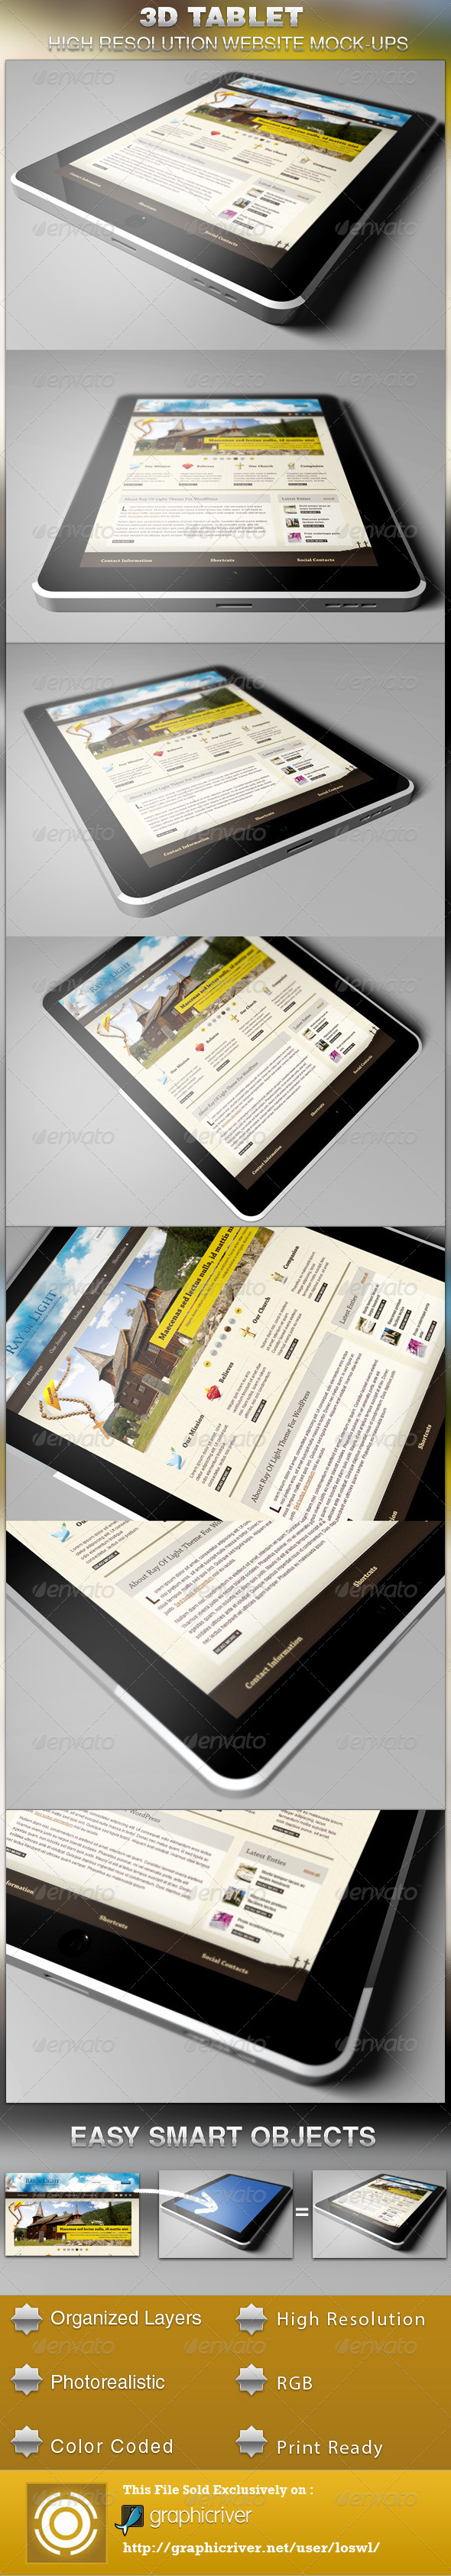 3D Tablet Website Mockup Template - Website Displays